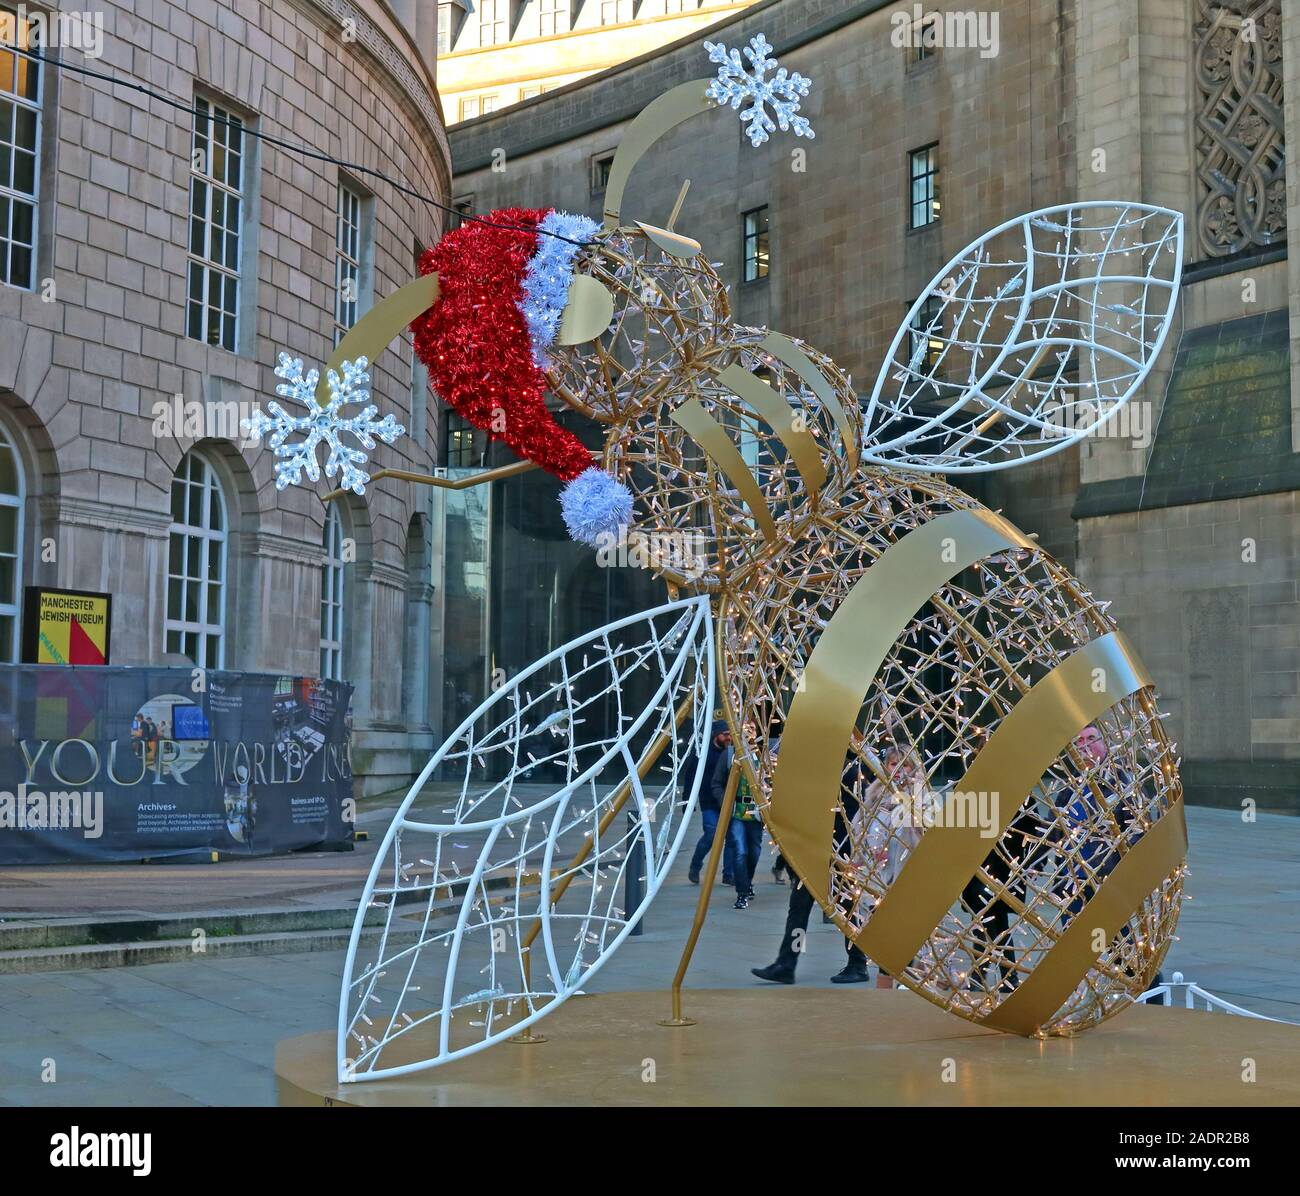 Gold bee,Christmas decorations,outside Manchester Central Library,St Peter's Square, Manchester M2 5PD Stock Photo